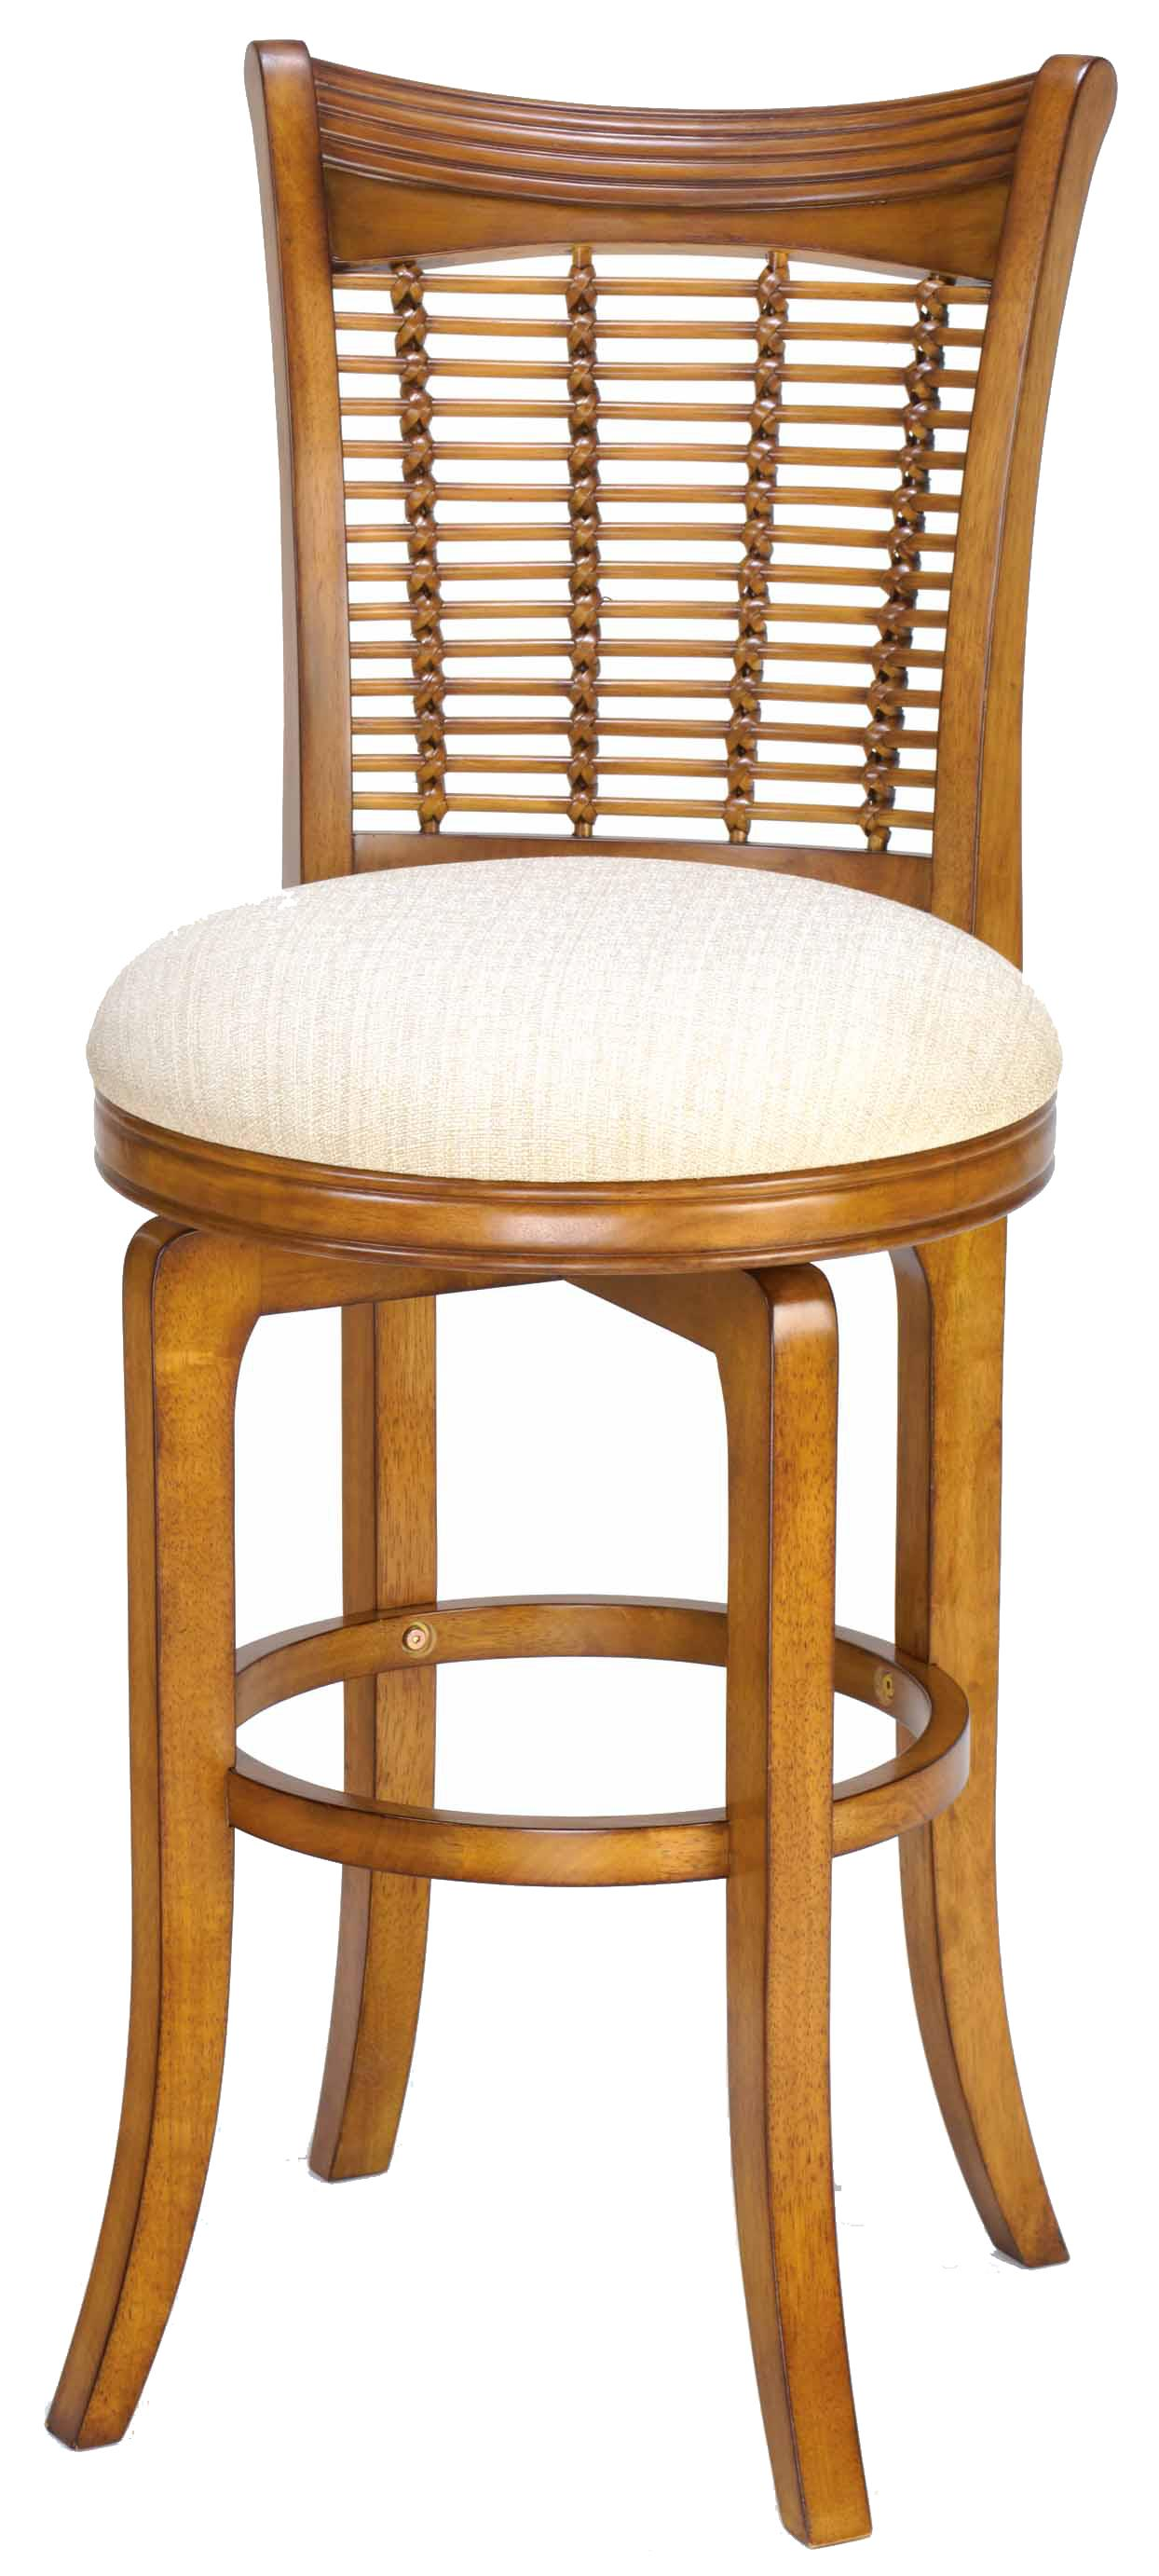 "Wood Stools 24"" Counter Height Bayberry Swivel Stool by Hillsdale at Johnny Janosik"